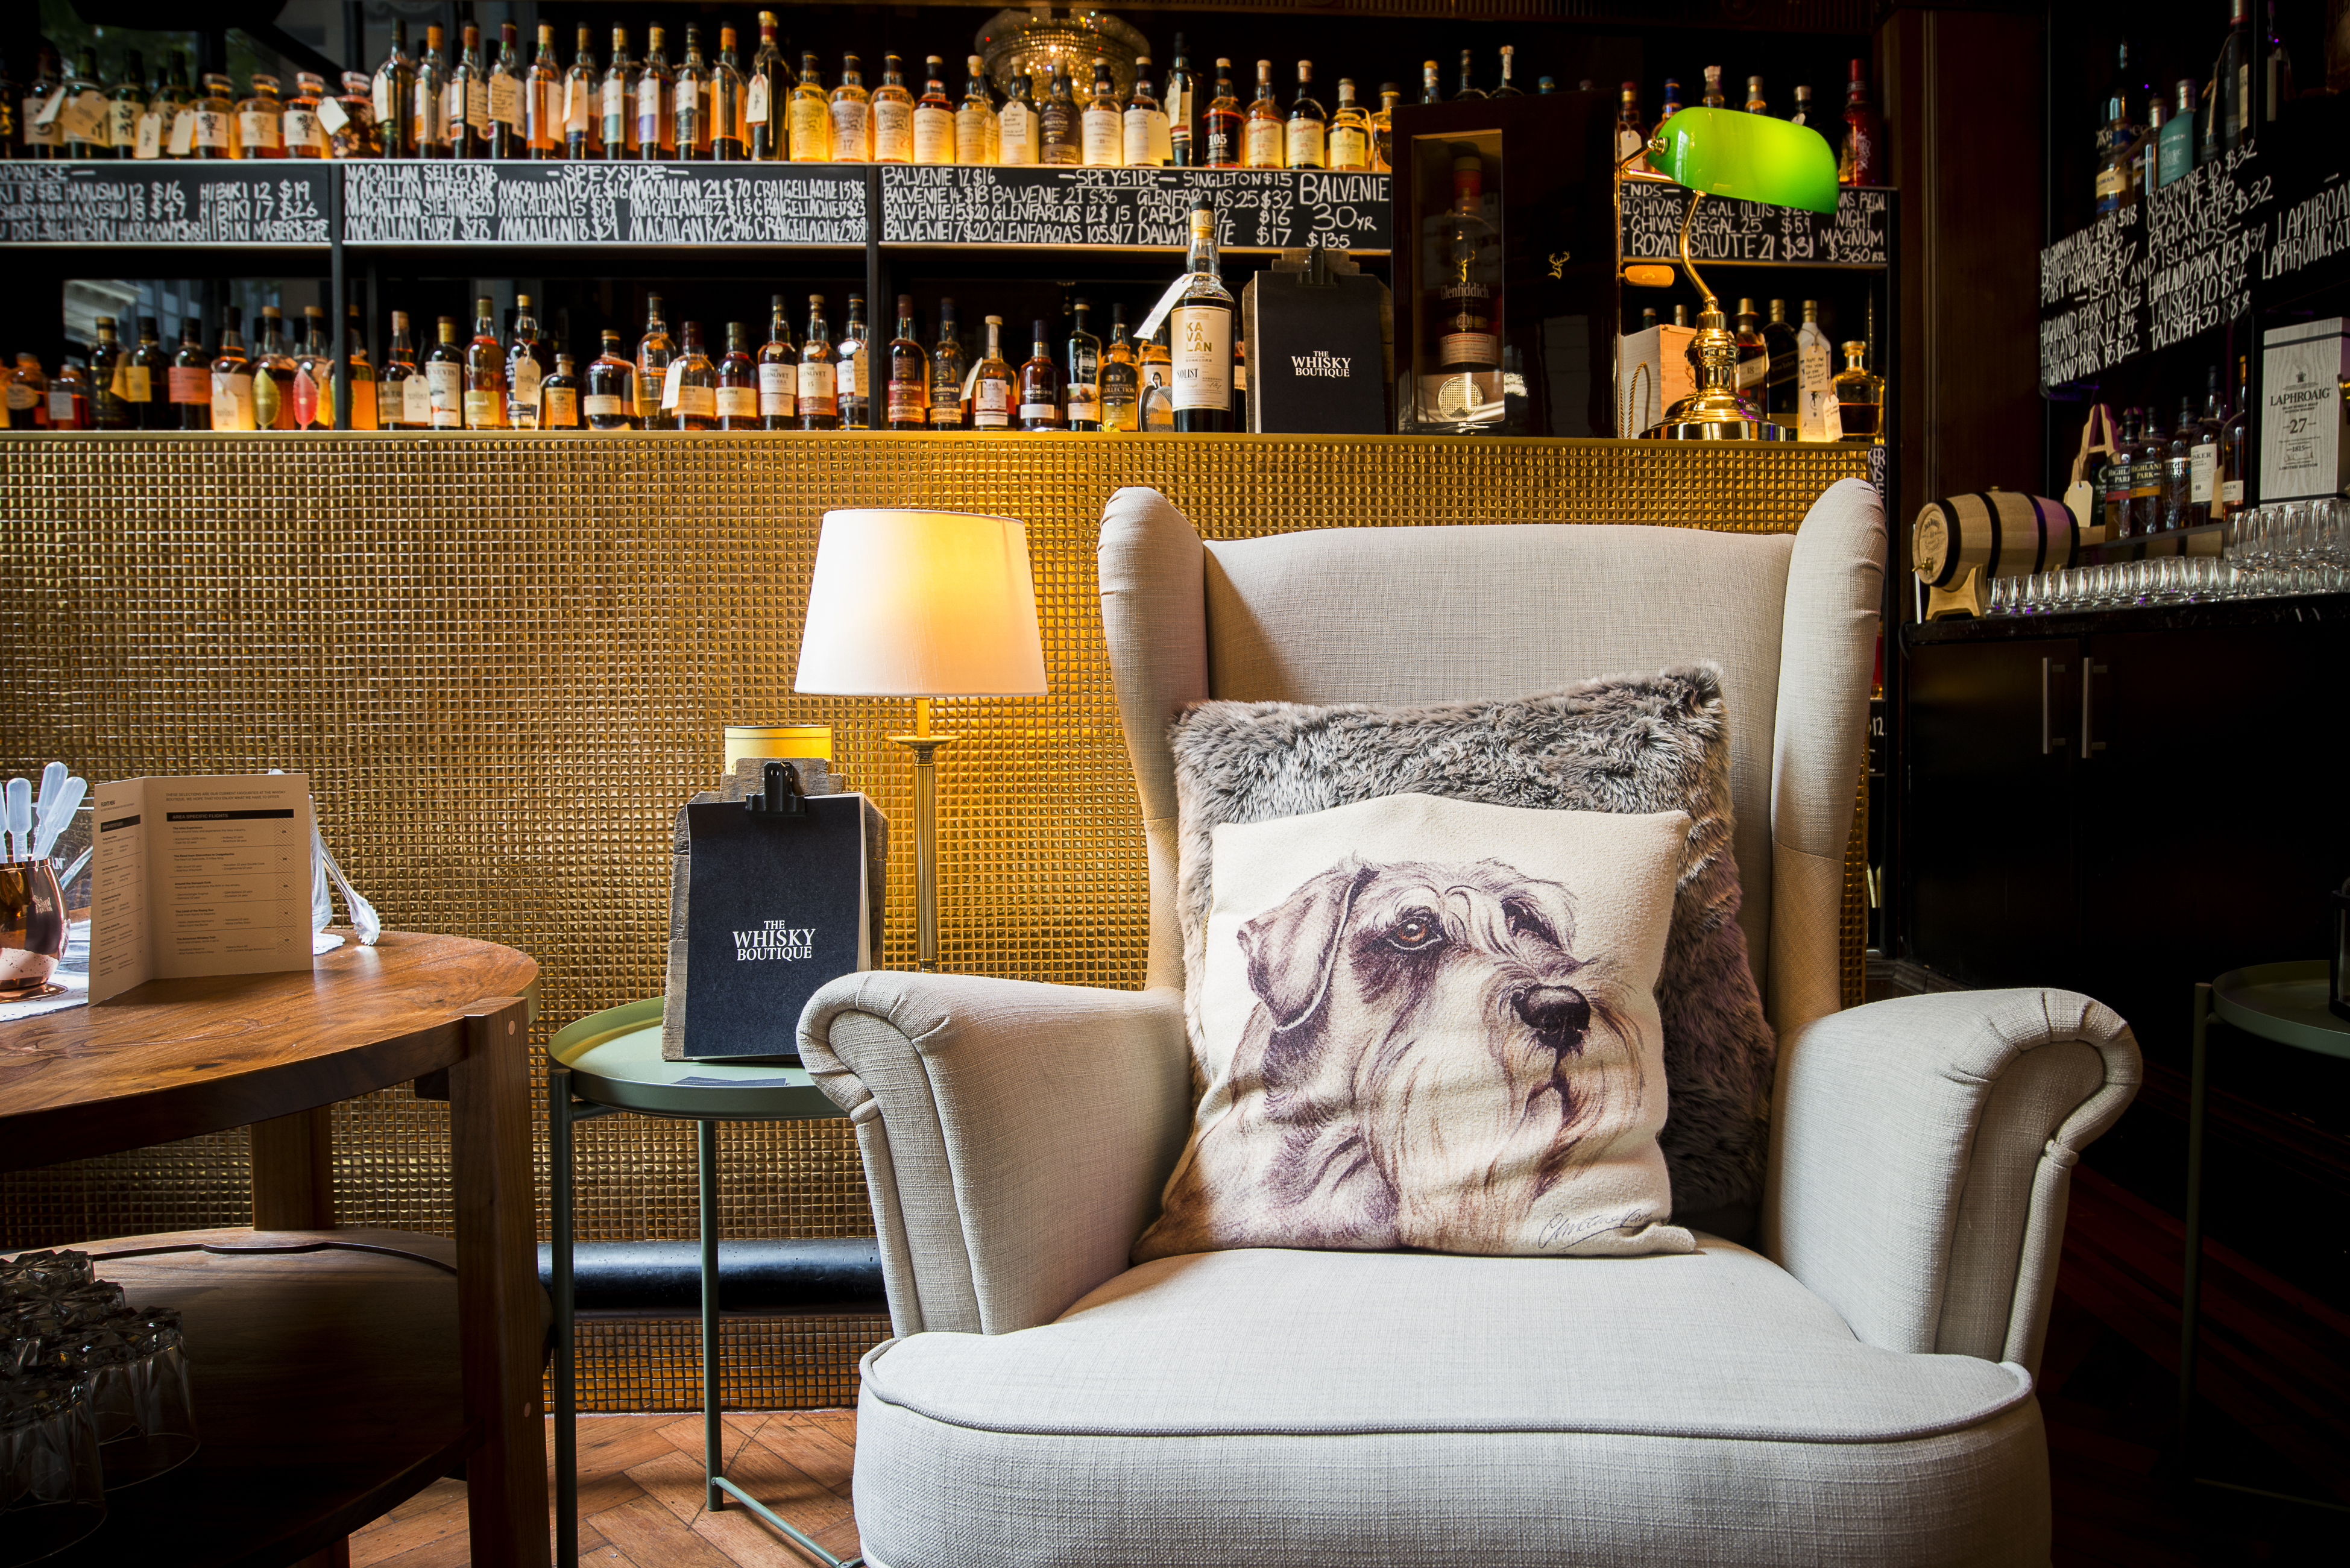 The Whisky Boutique Interior 2.jpg